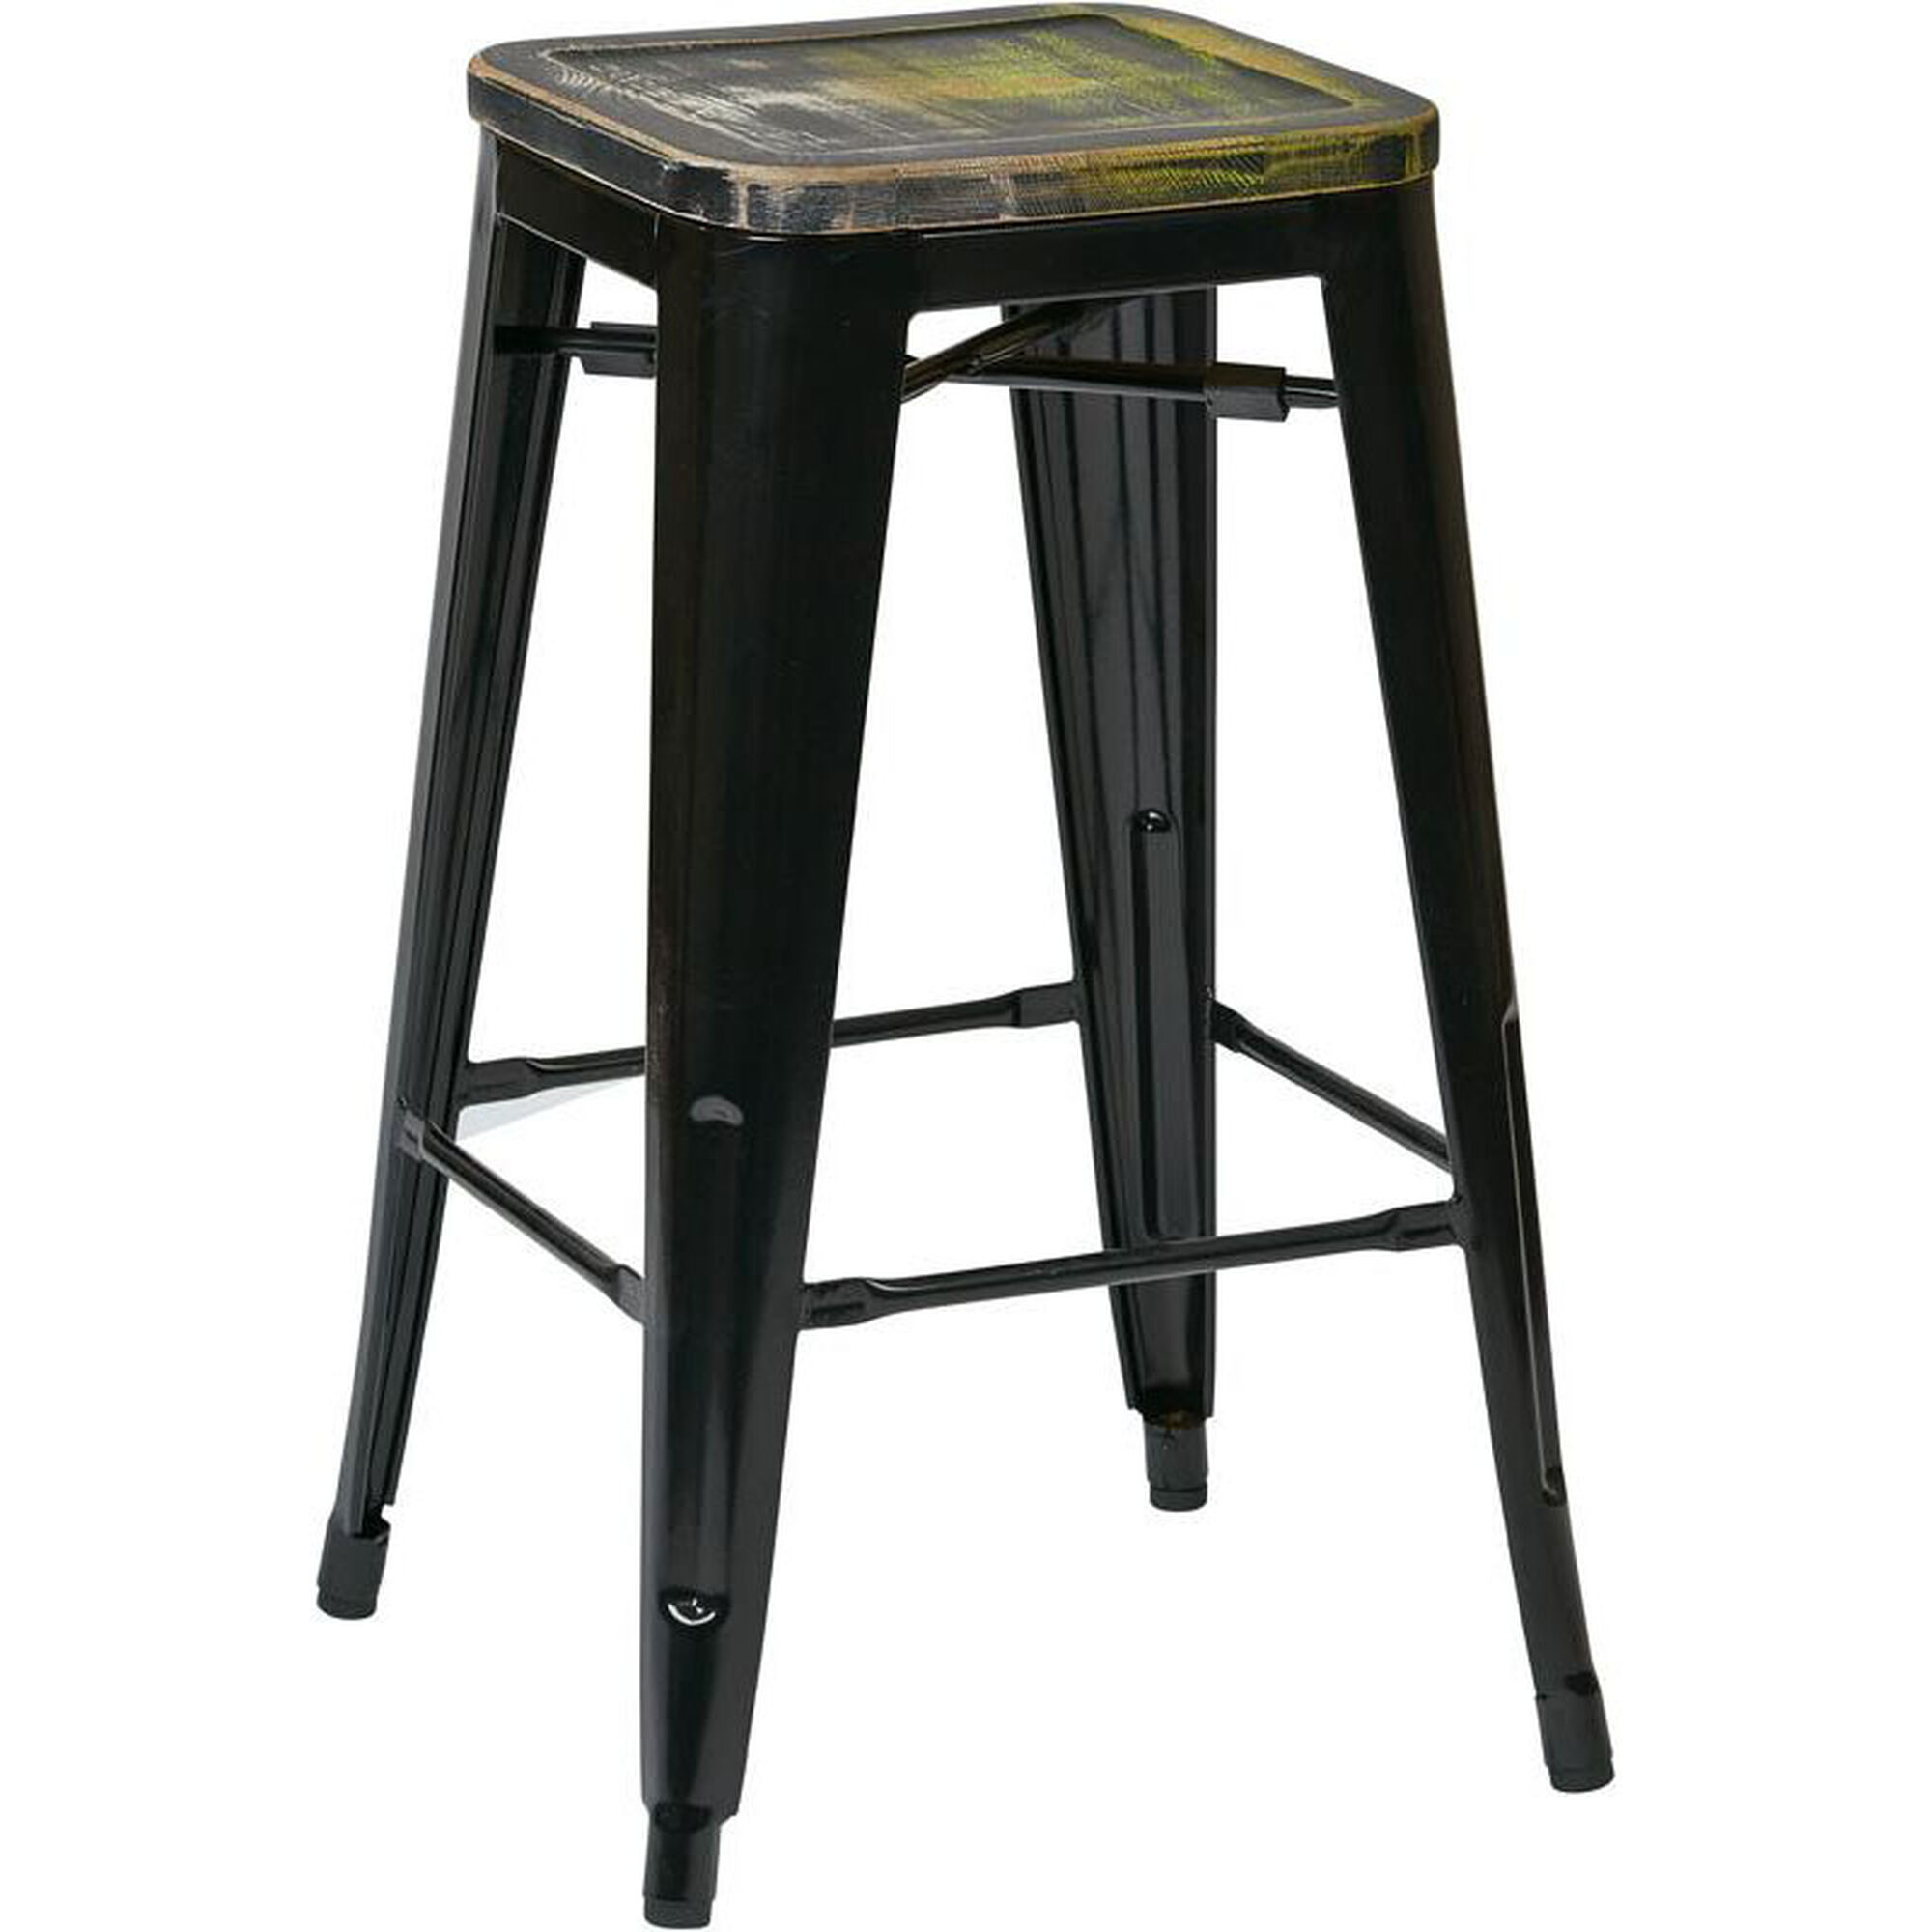 Osp Designs Bristow 26 Metal Barstool With Wood Seat